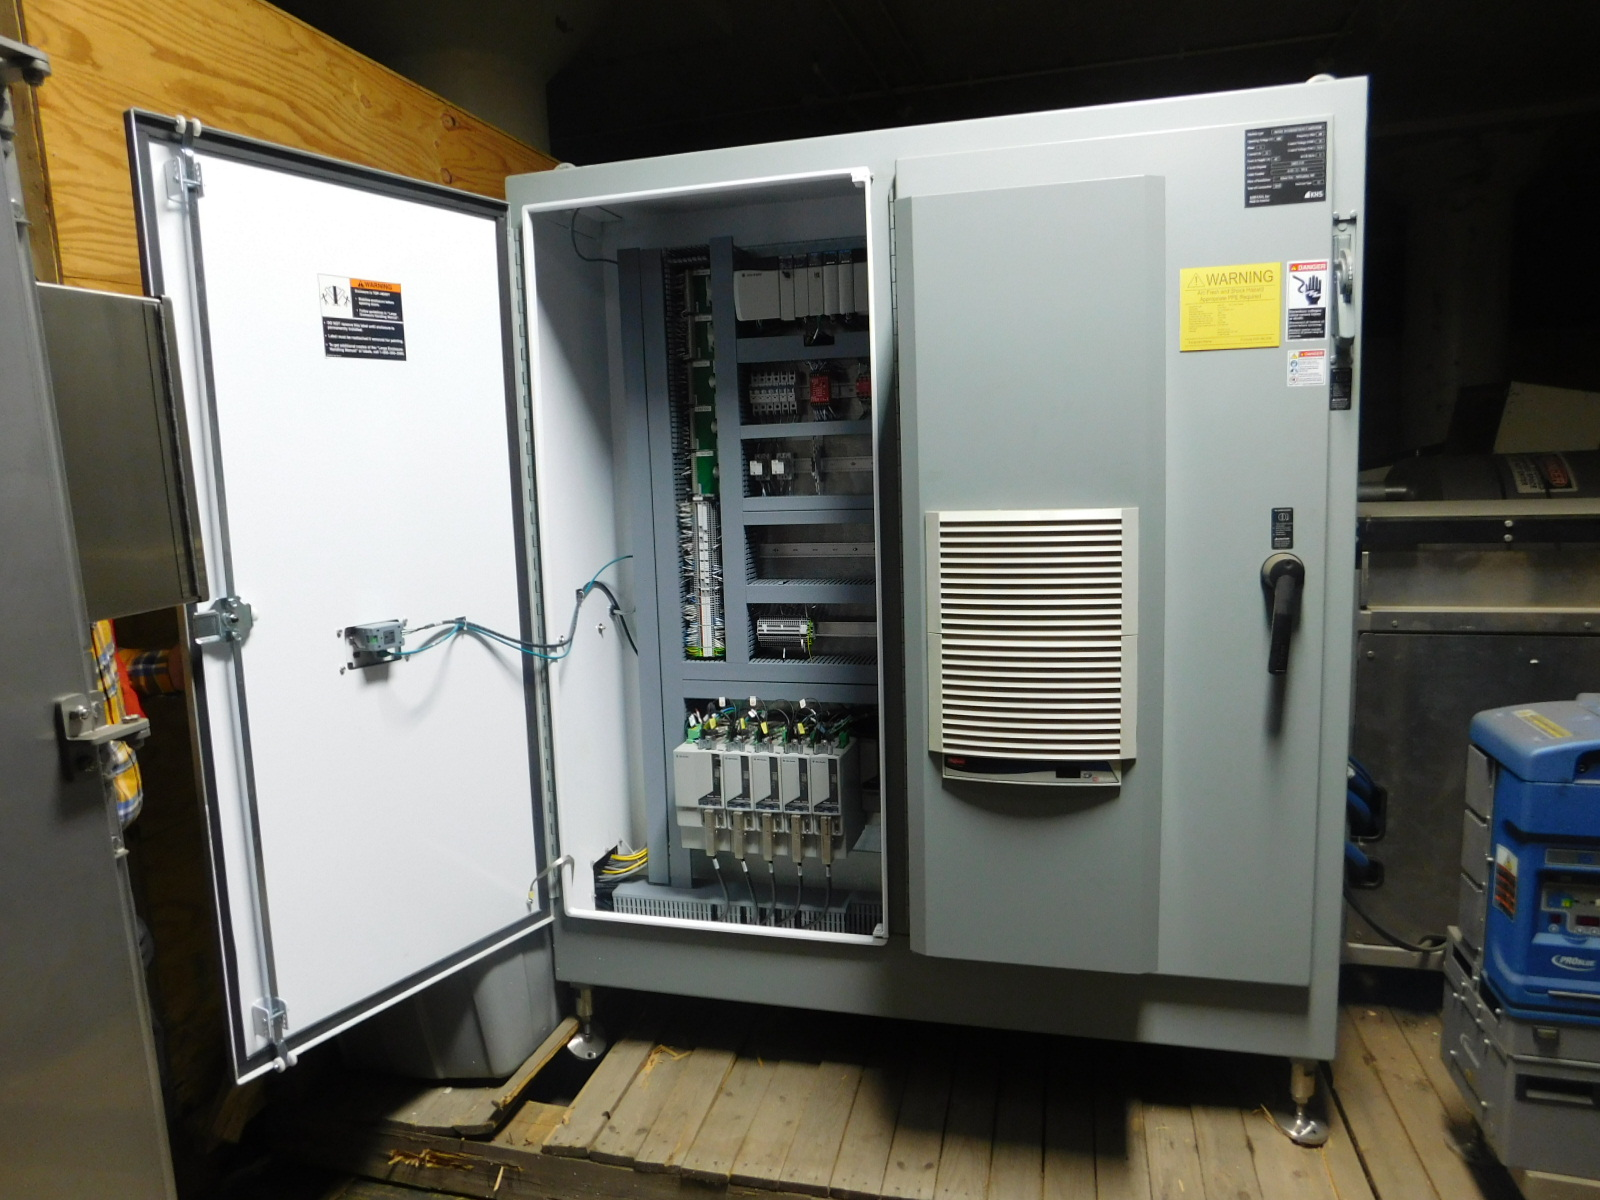 Lot 4 - KHS IM/SM INTERMITTENT CARTONER YEAR 2010 SN: 20812-510 with Mclean M520446G002,Compact Indoor Air